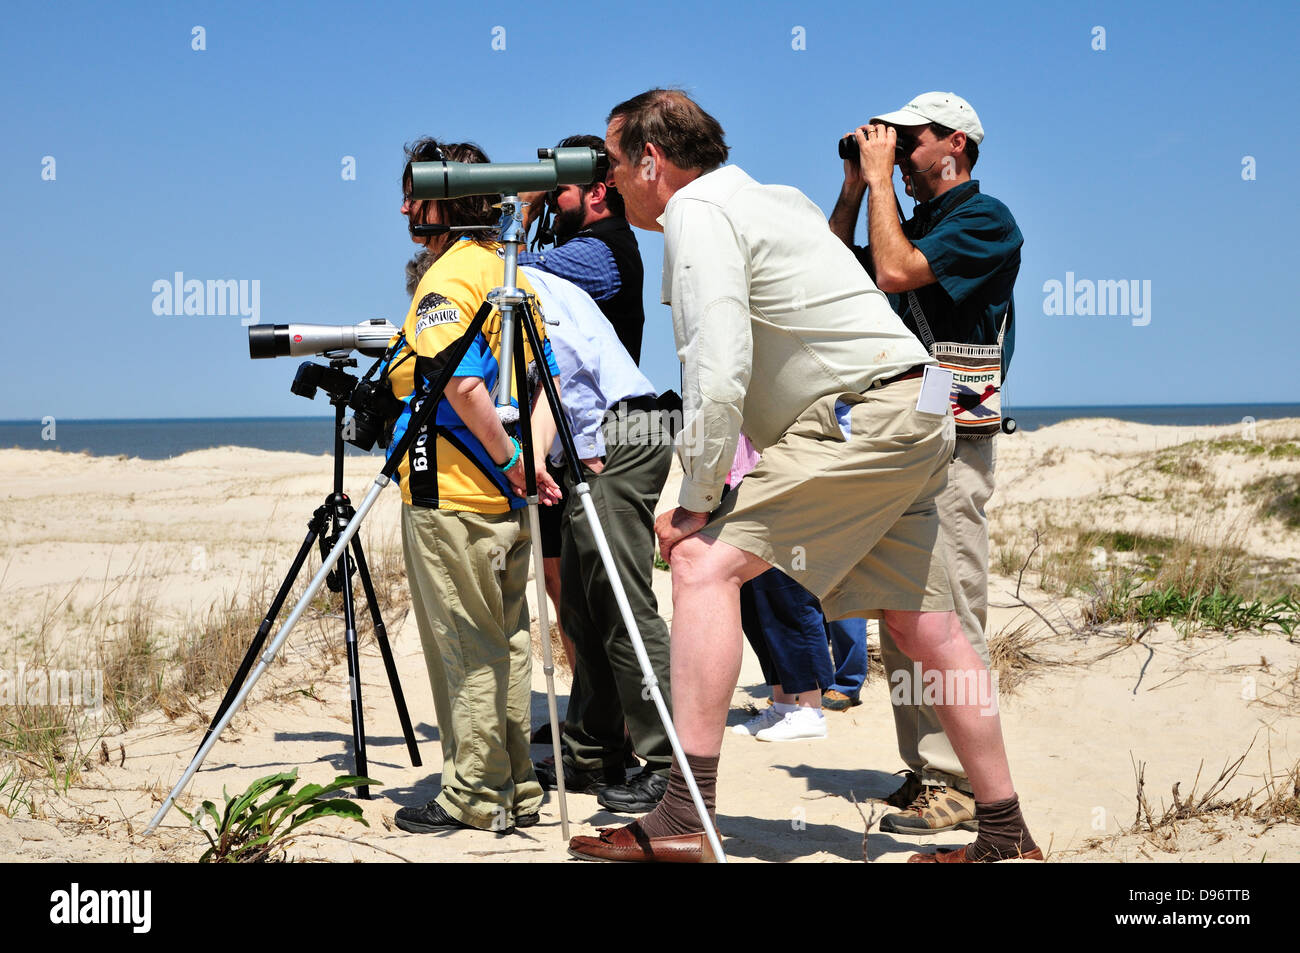 Bird watchers at Cape Henlopen State Park, Lewes, Delaware - Stock Image